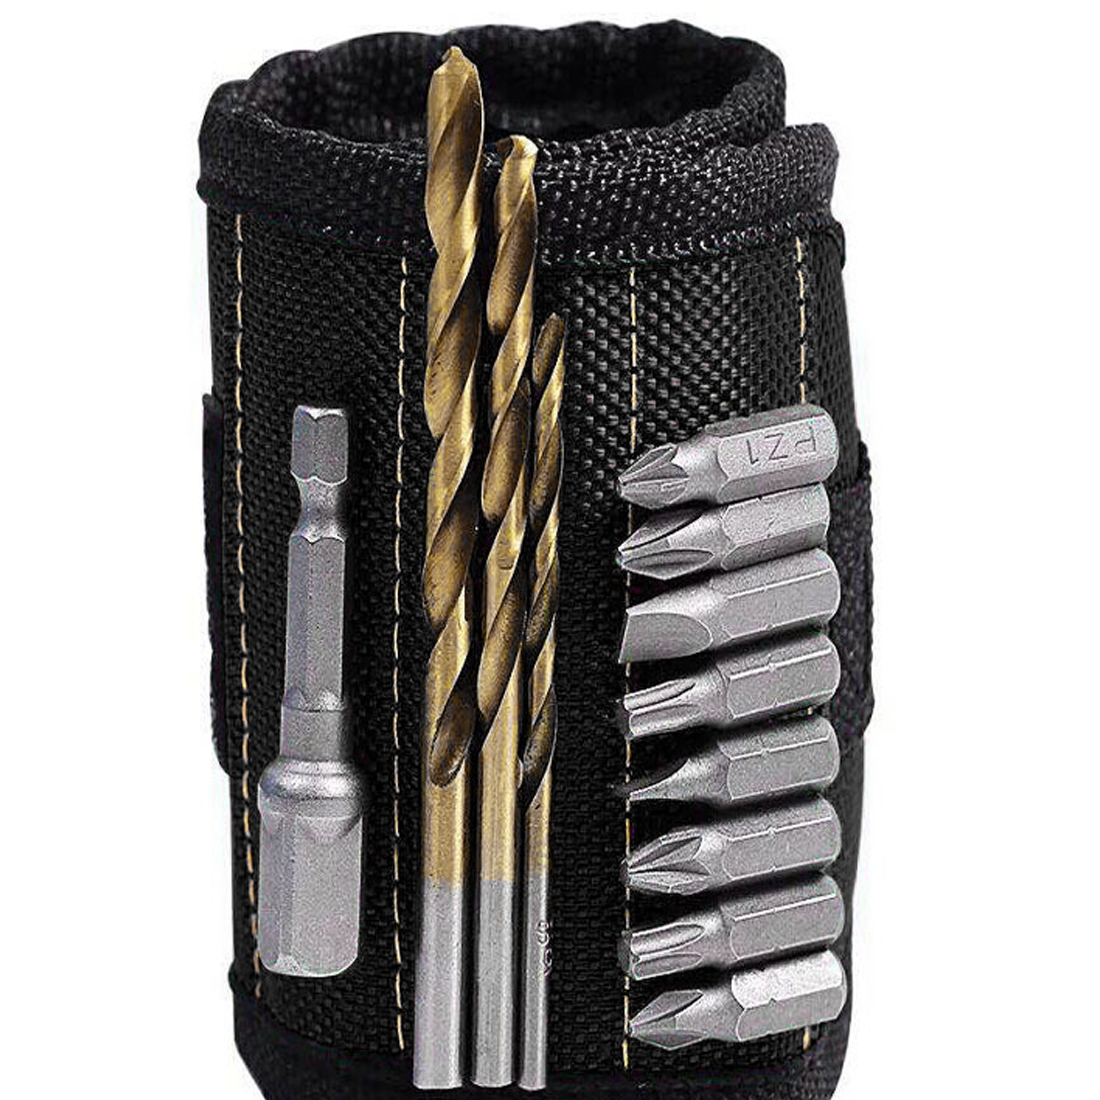 Wrist Support Strong Magnetic Nail Screw Drill Bit Holder Wristband Holding Hand Tool Bag Bracelet Belt Auto Car Repair Toolkit